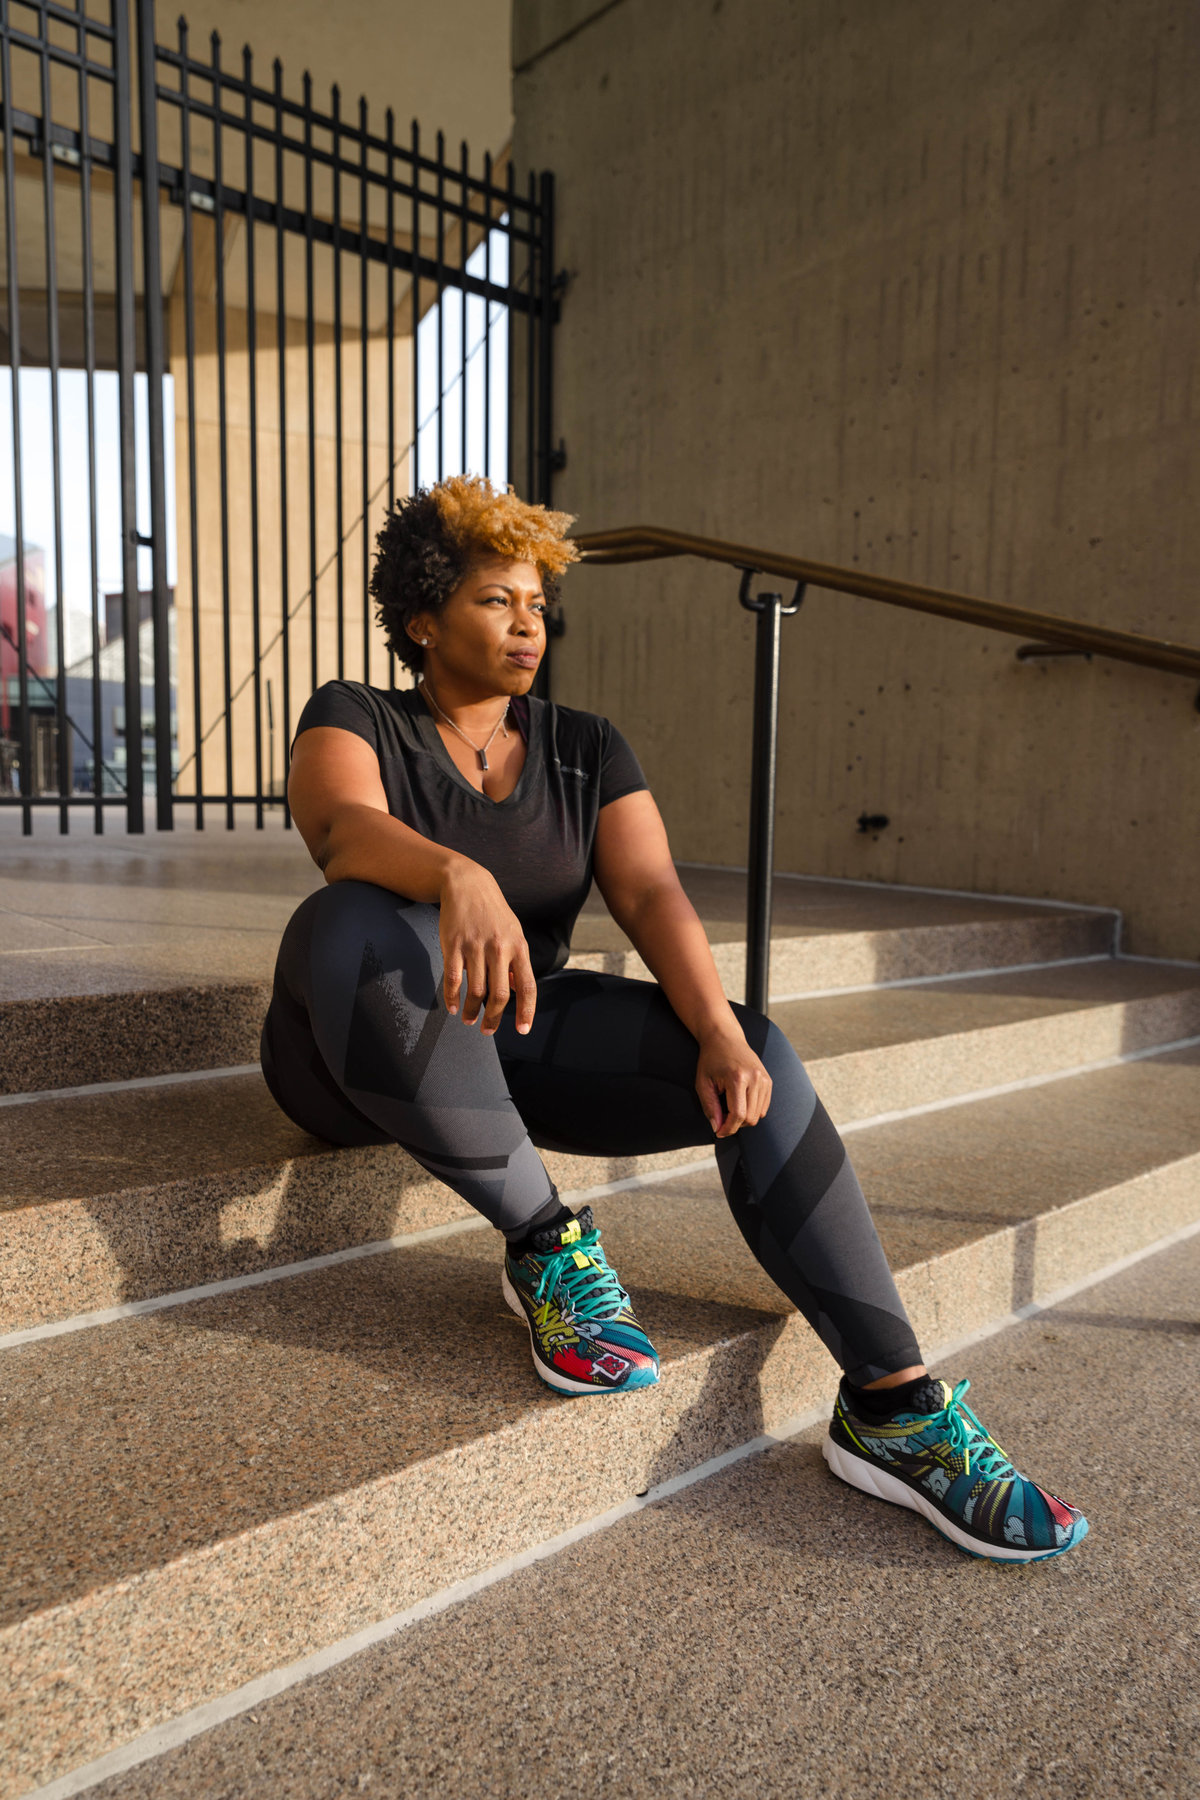 alexandria-williams-national-black-marathoners-association-brooks-ambassador-baltimore-marathon